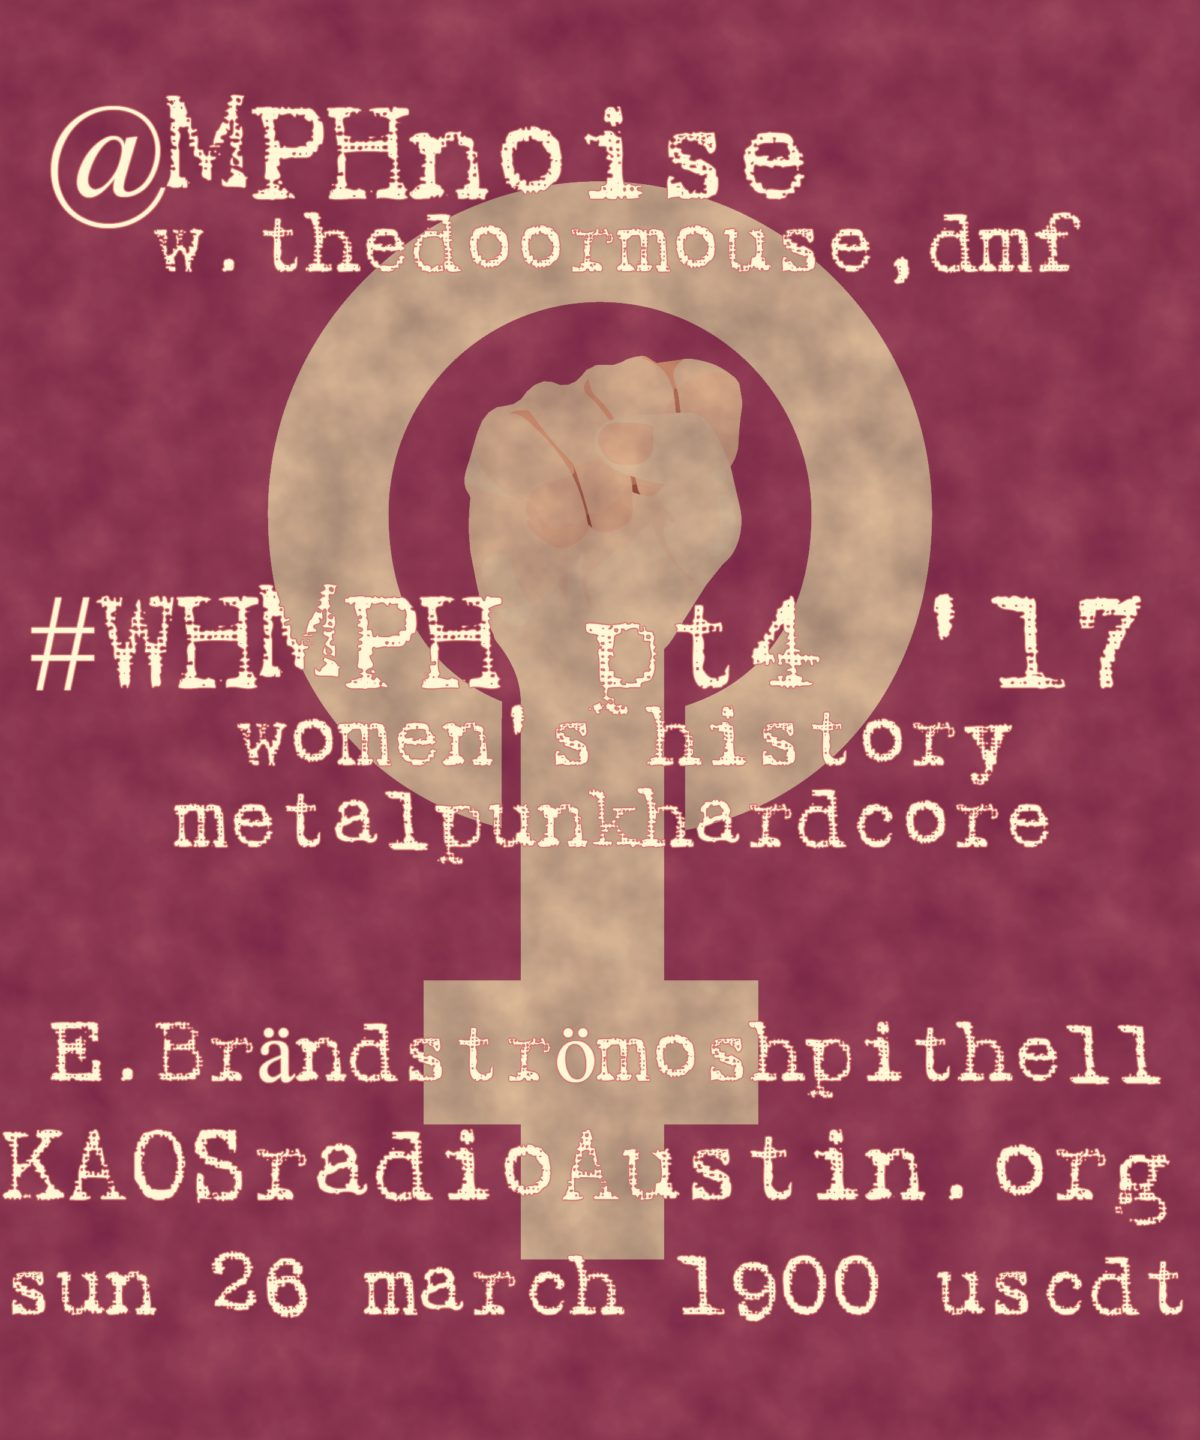 WHMPH vol.4 '17 edition of Mosh Pit Hell – E.Brändström edition of Women's History Month